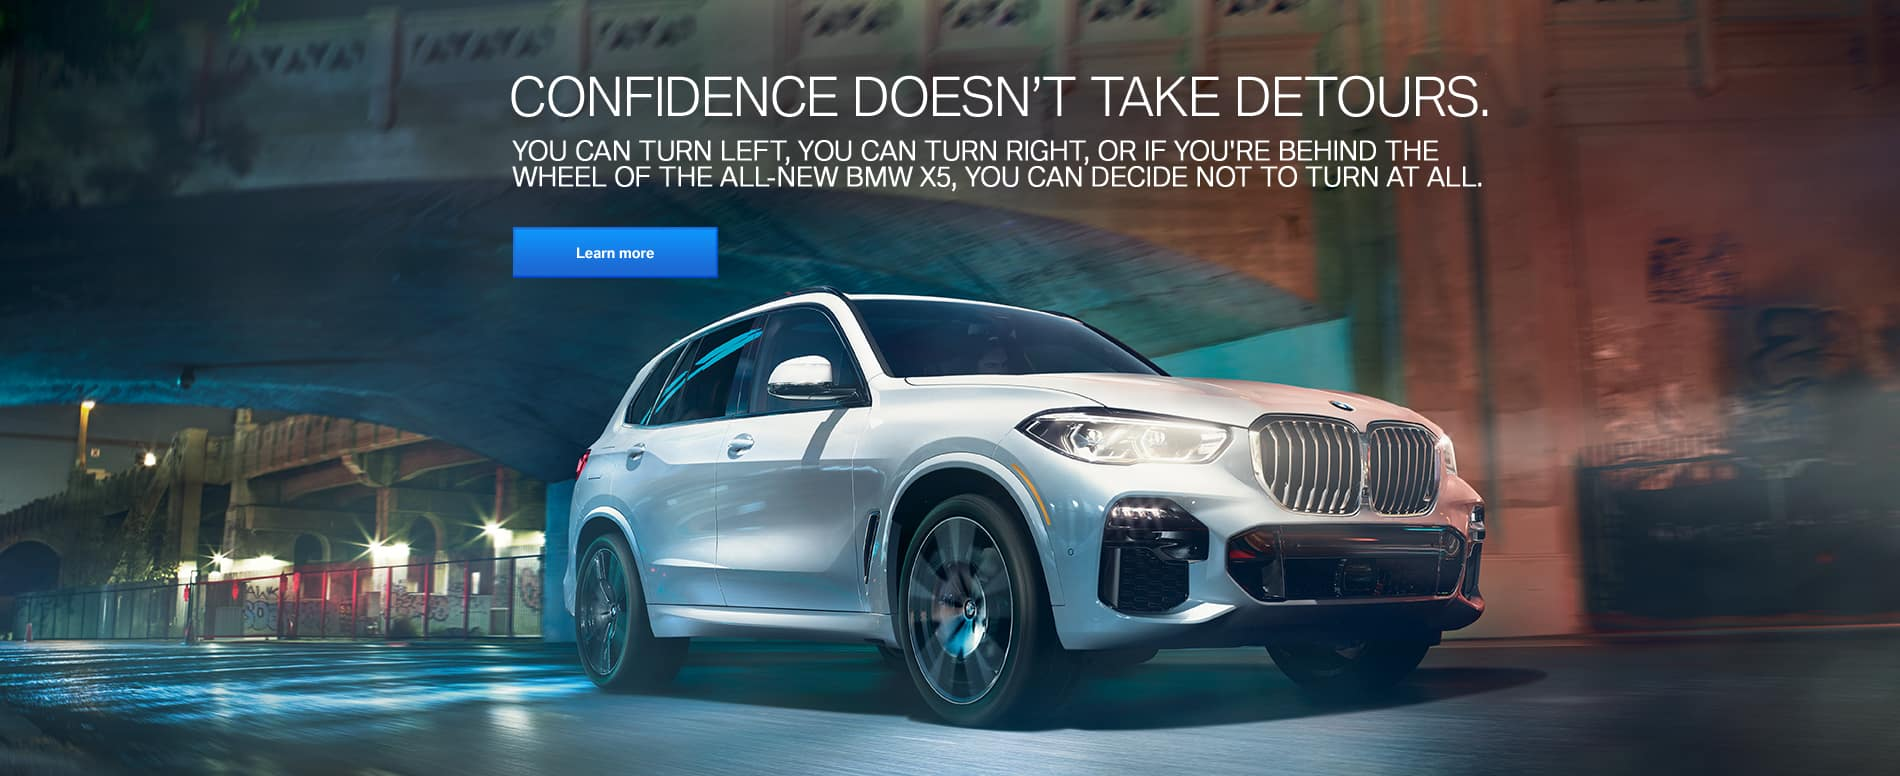 PUSH_2019_X5_xDrive40i_CONFIDENCE